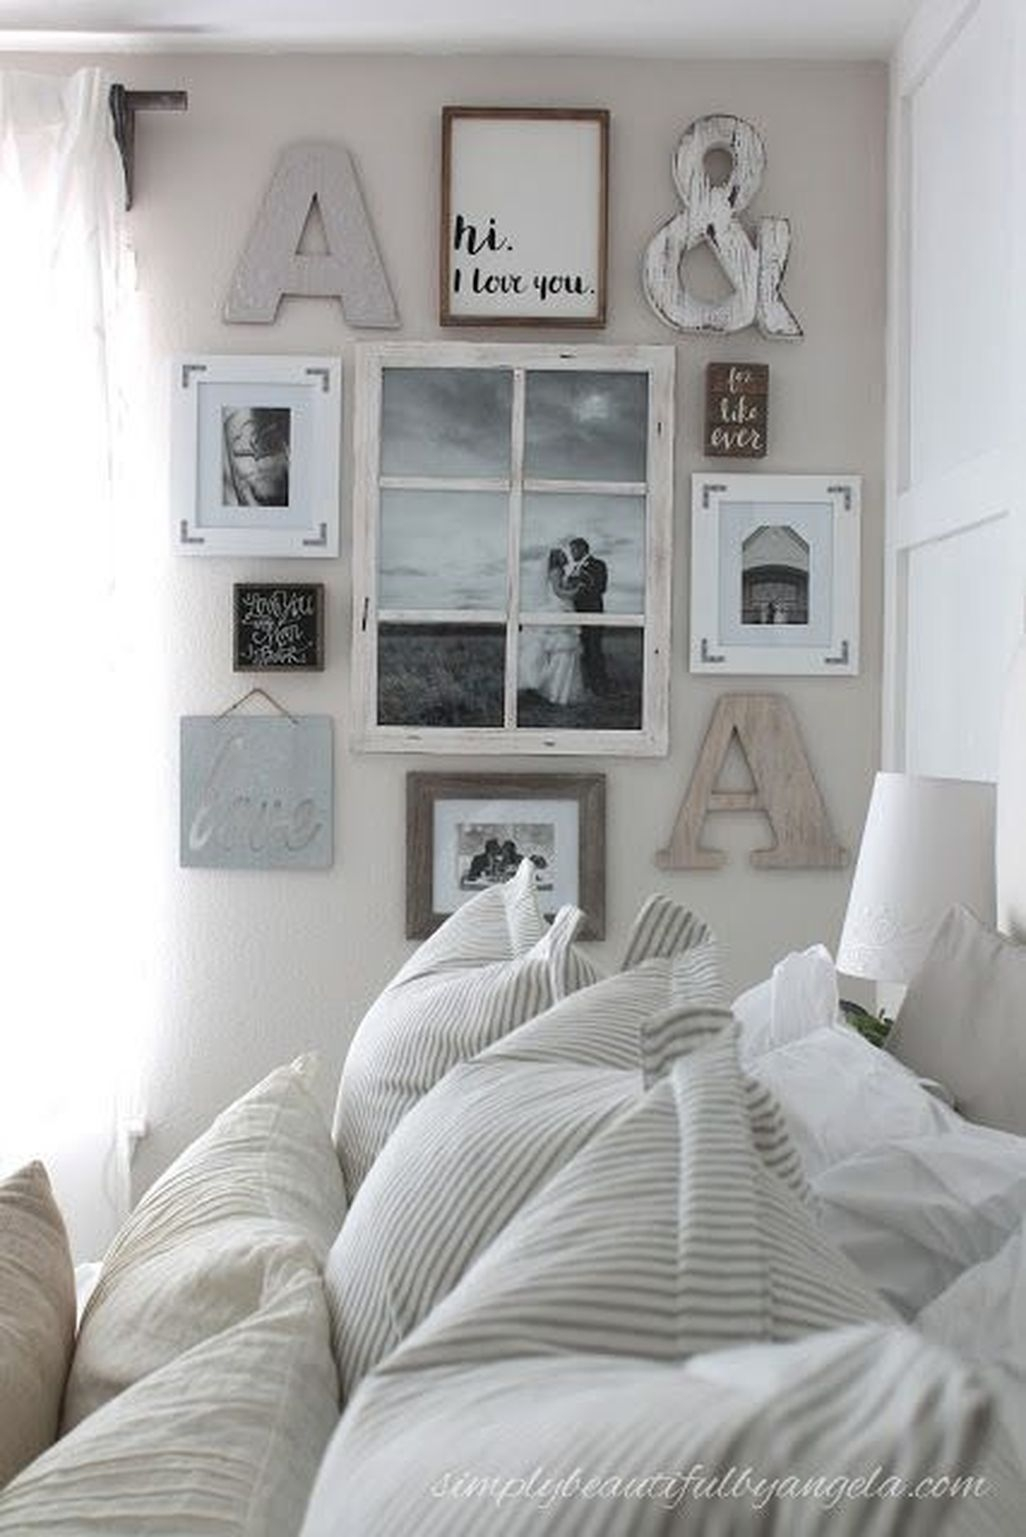 Awesome Rustic Farmhouse Bedroom Decoration Ideas 40